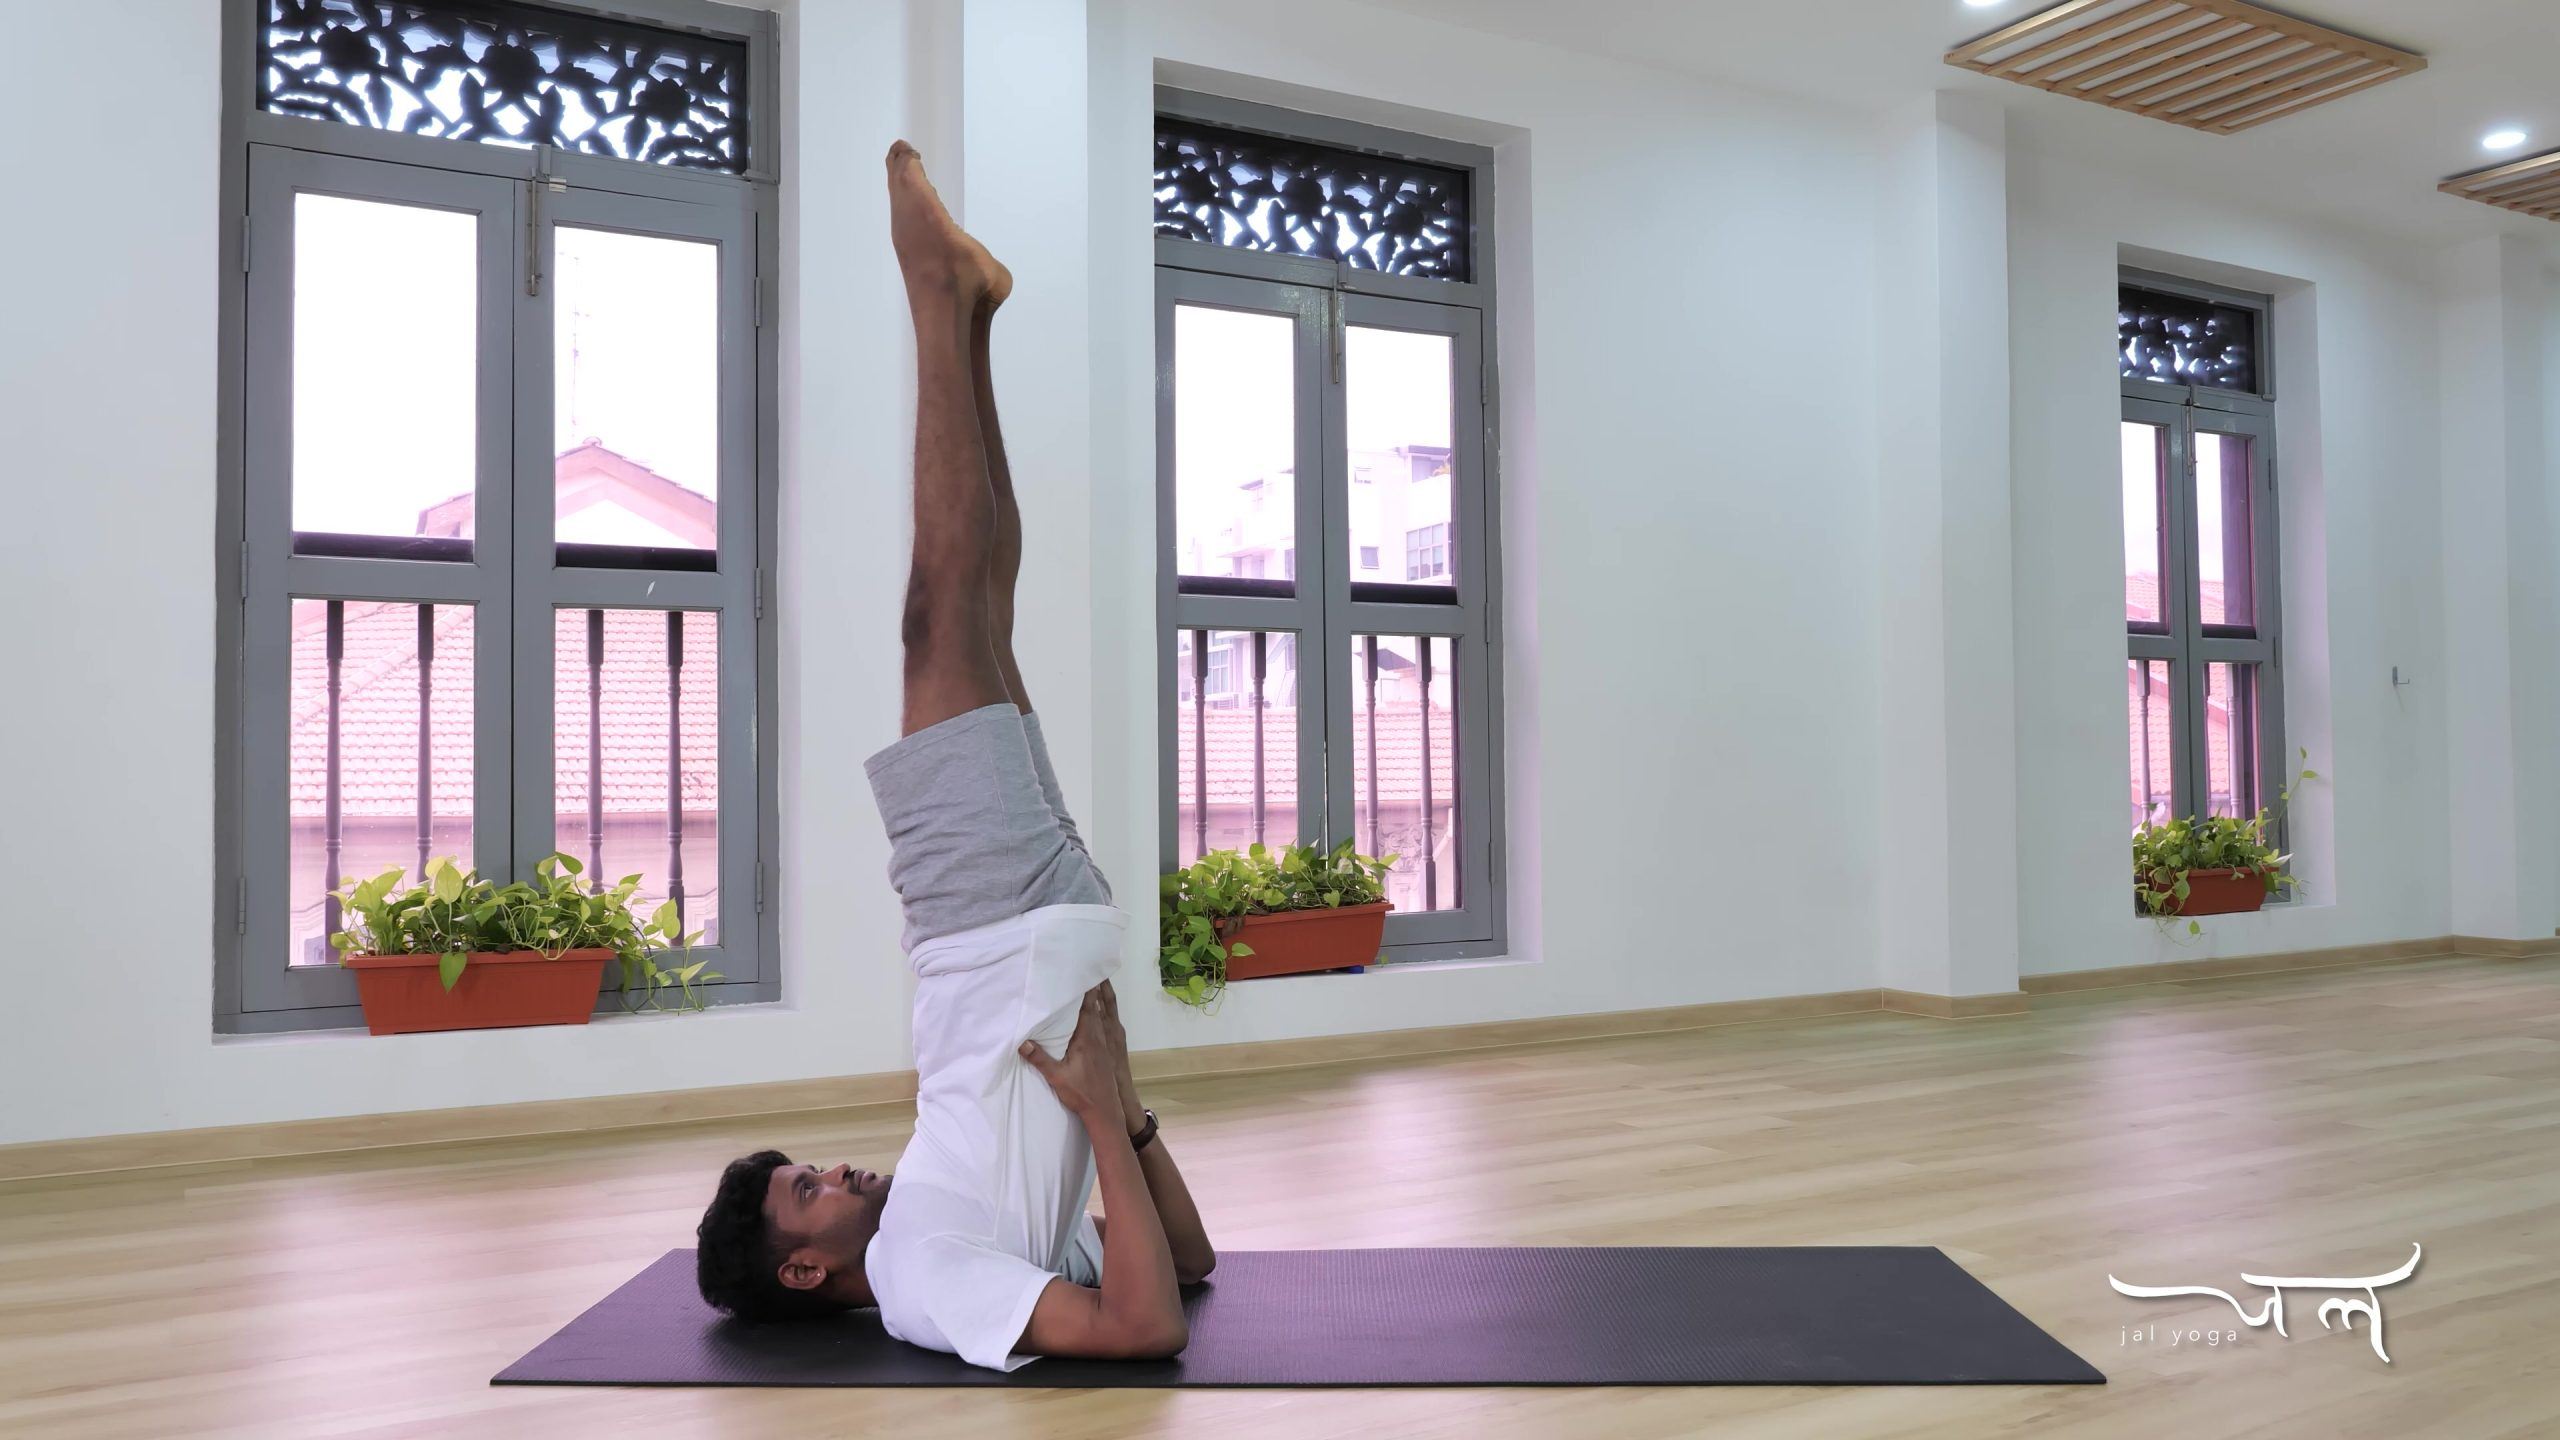 Shoulder Stand | Yoga Therapy for Better Sleep | Manage Sleep Disorders